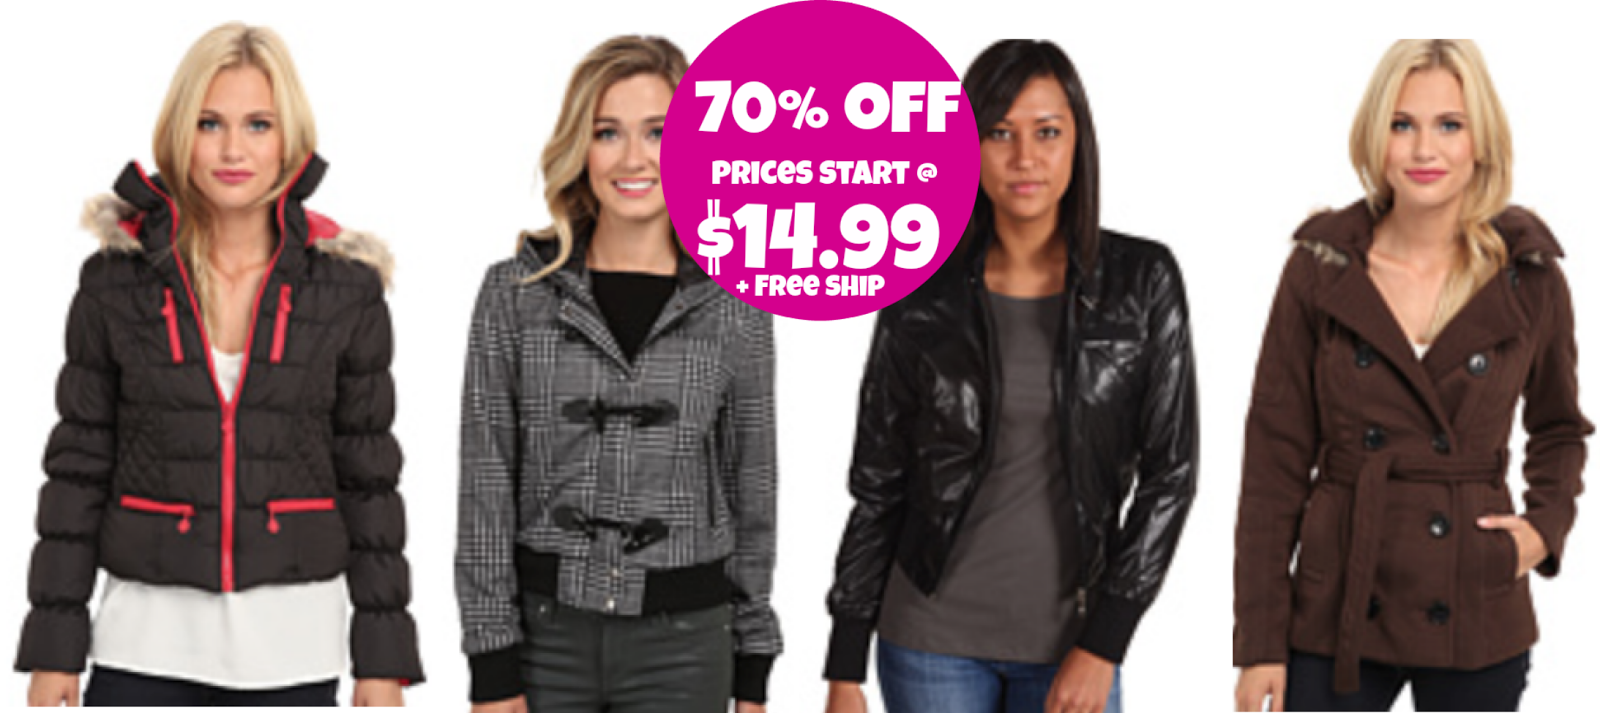 http://www.thebinderladies.com/2015/01/6pm-up-to-70-off-coats-jackets-for-men.html#.VKmqE4fduyM